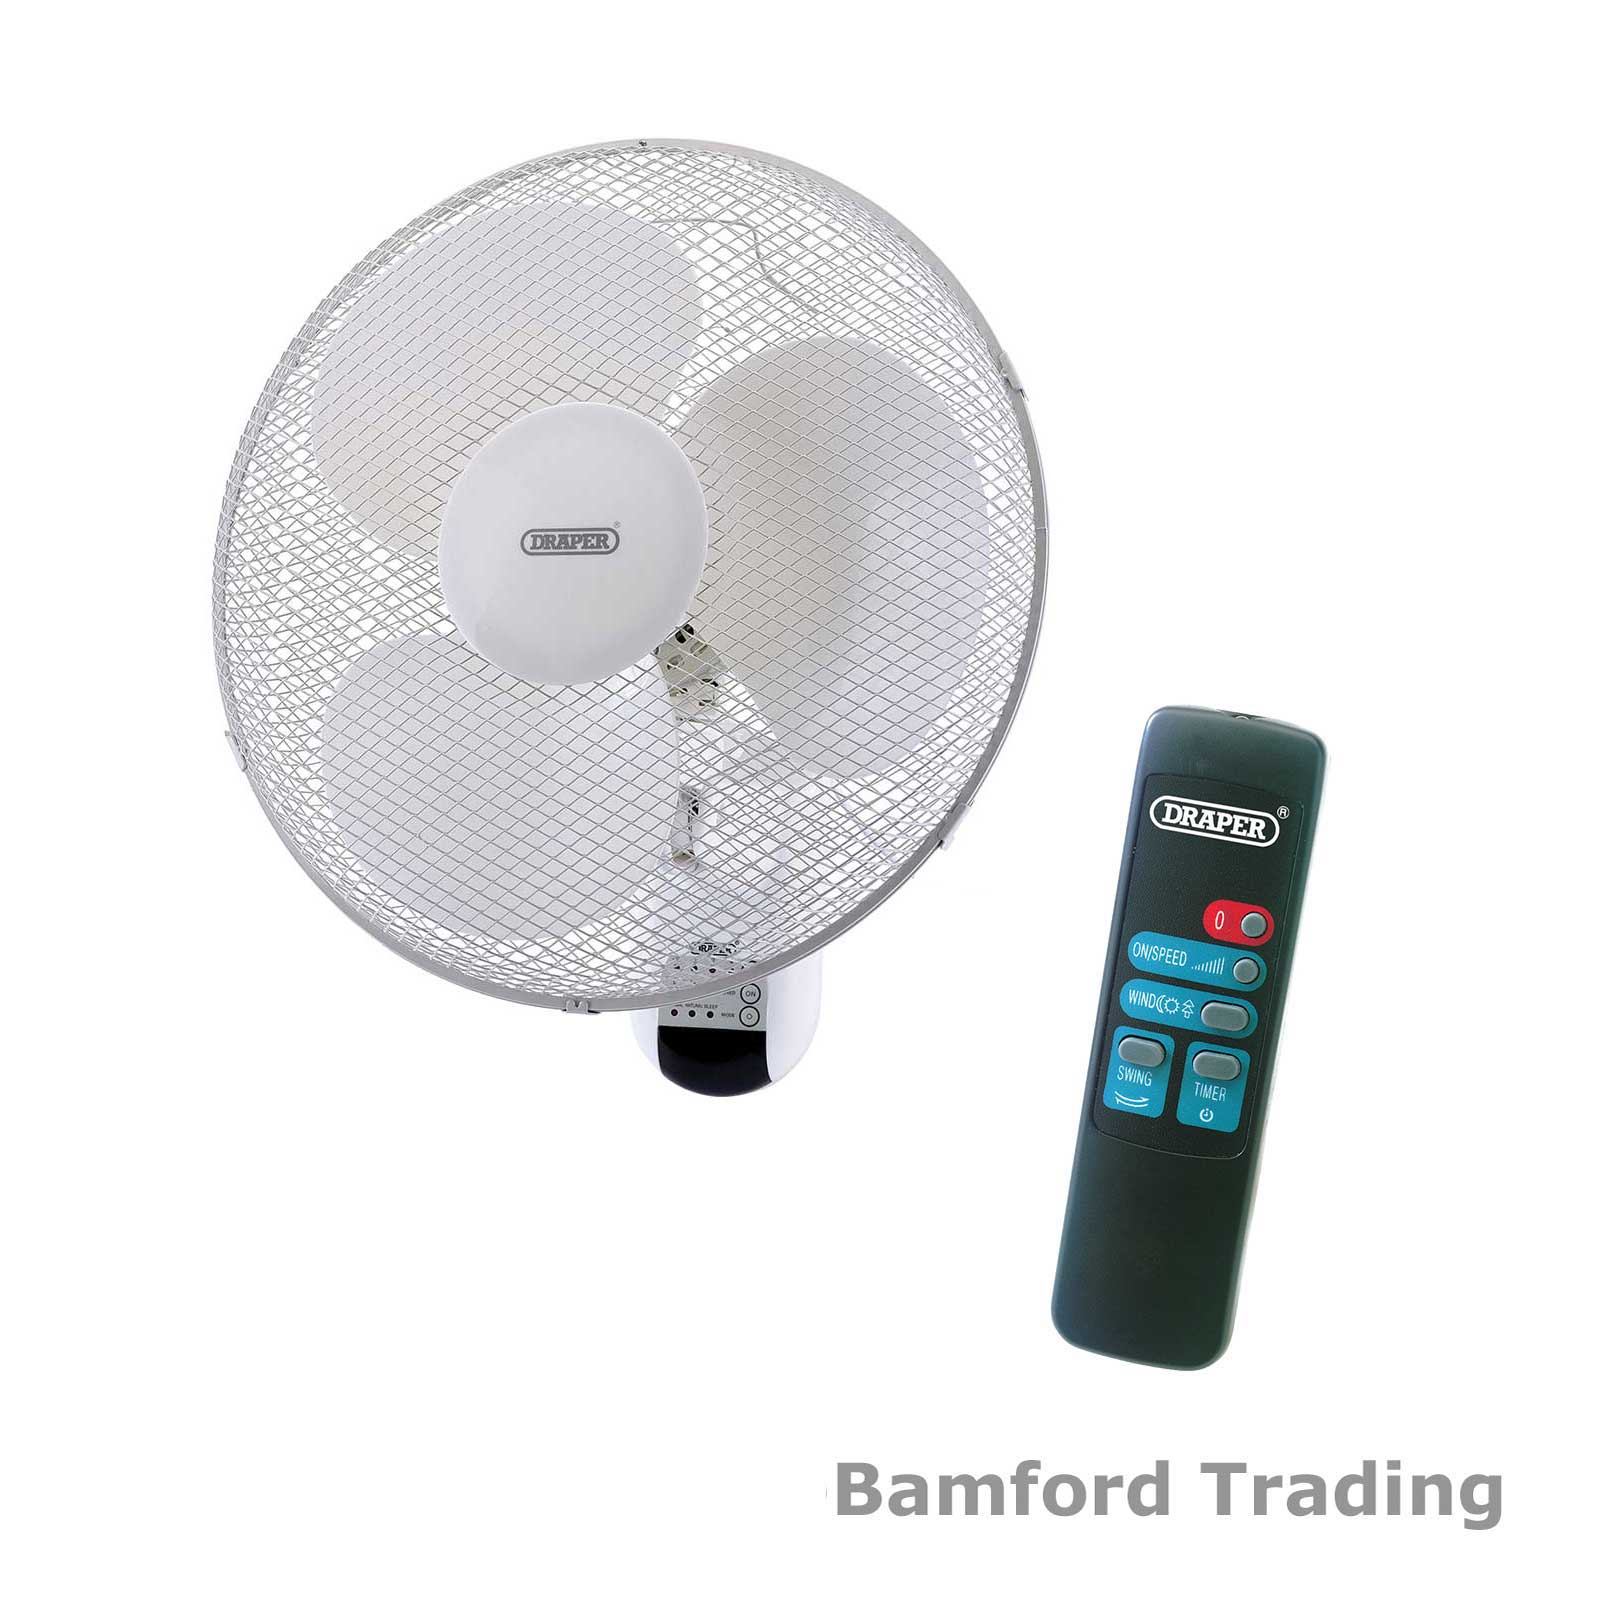 Wall Mounted Fans With Remote Control : Draper quot wall mounted remote controlled fan with tilt